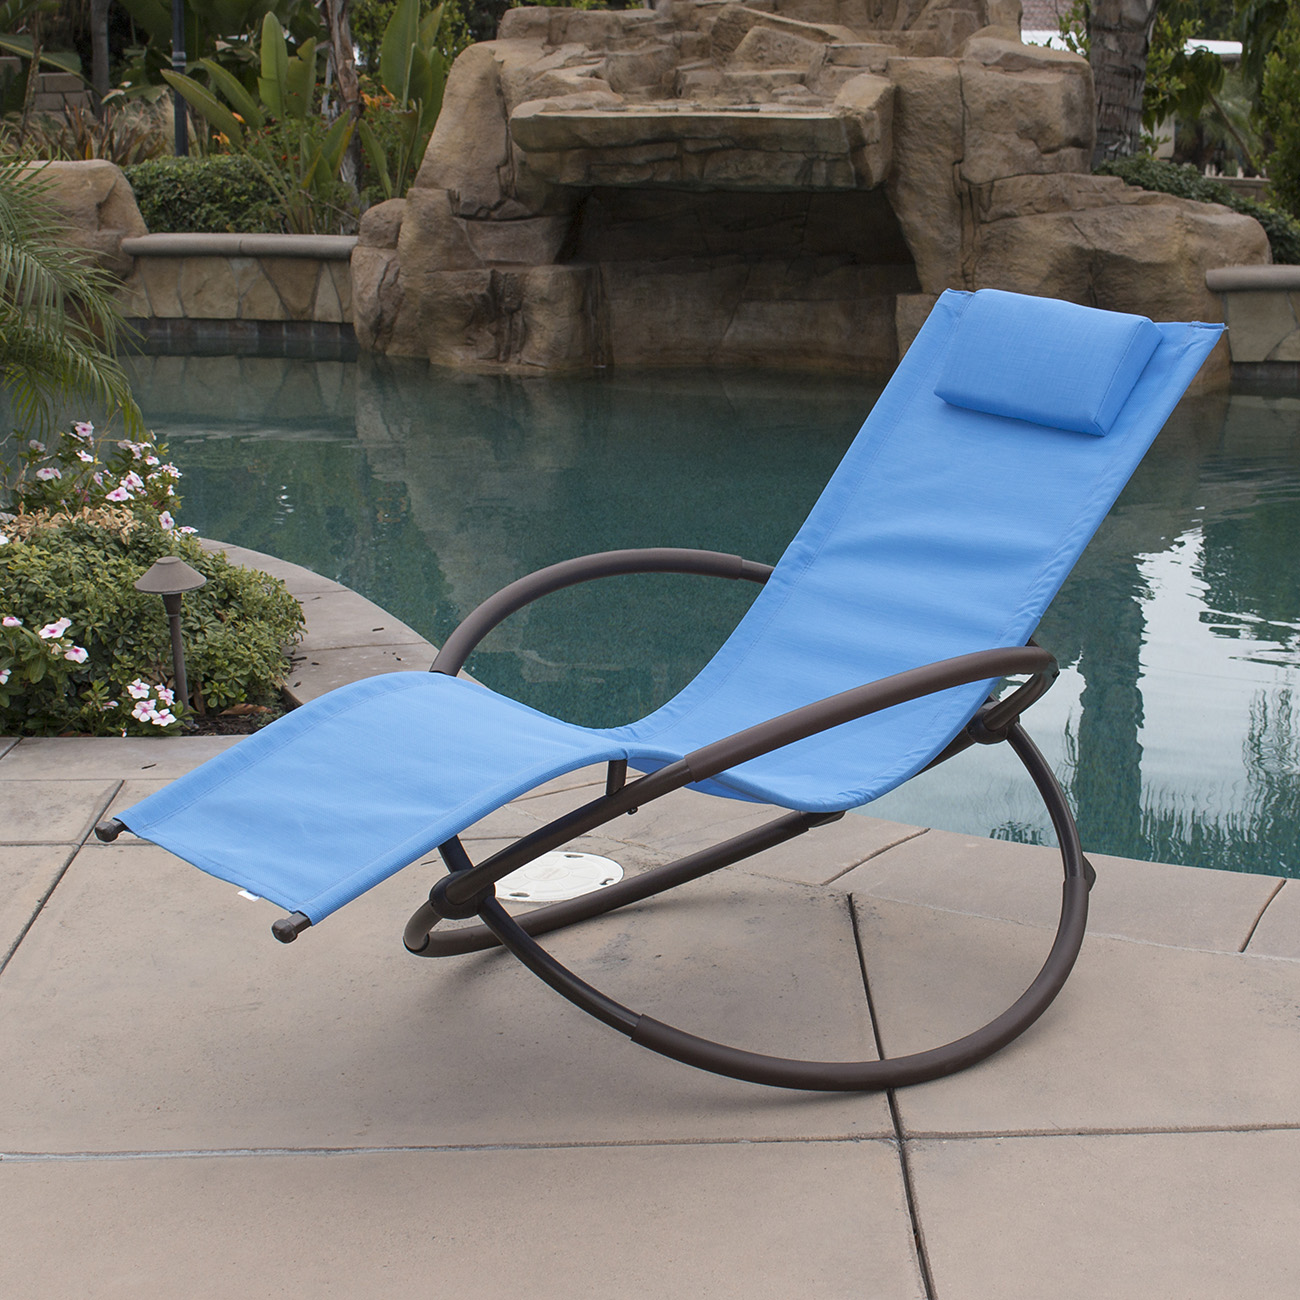 Orbital folding zero gravity lounge chairs outdoor beach for Anti gravity chaise lounger